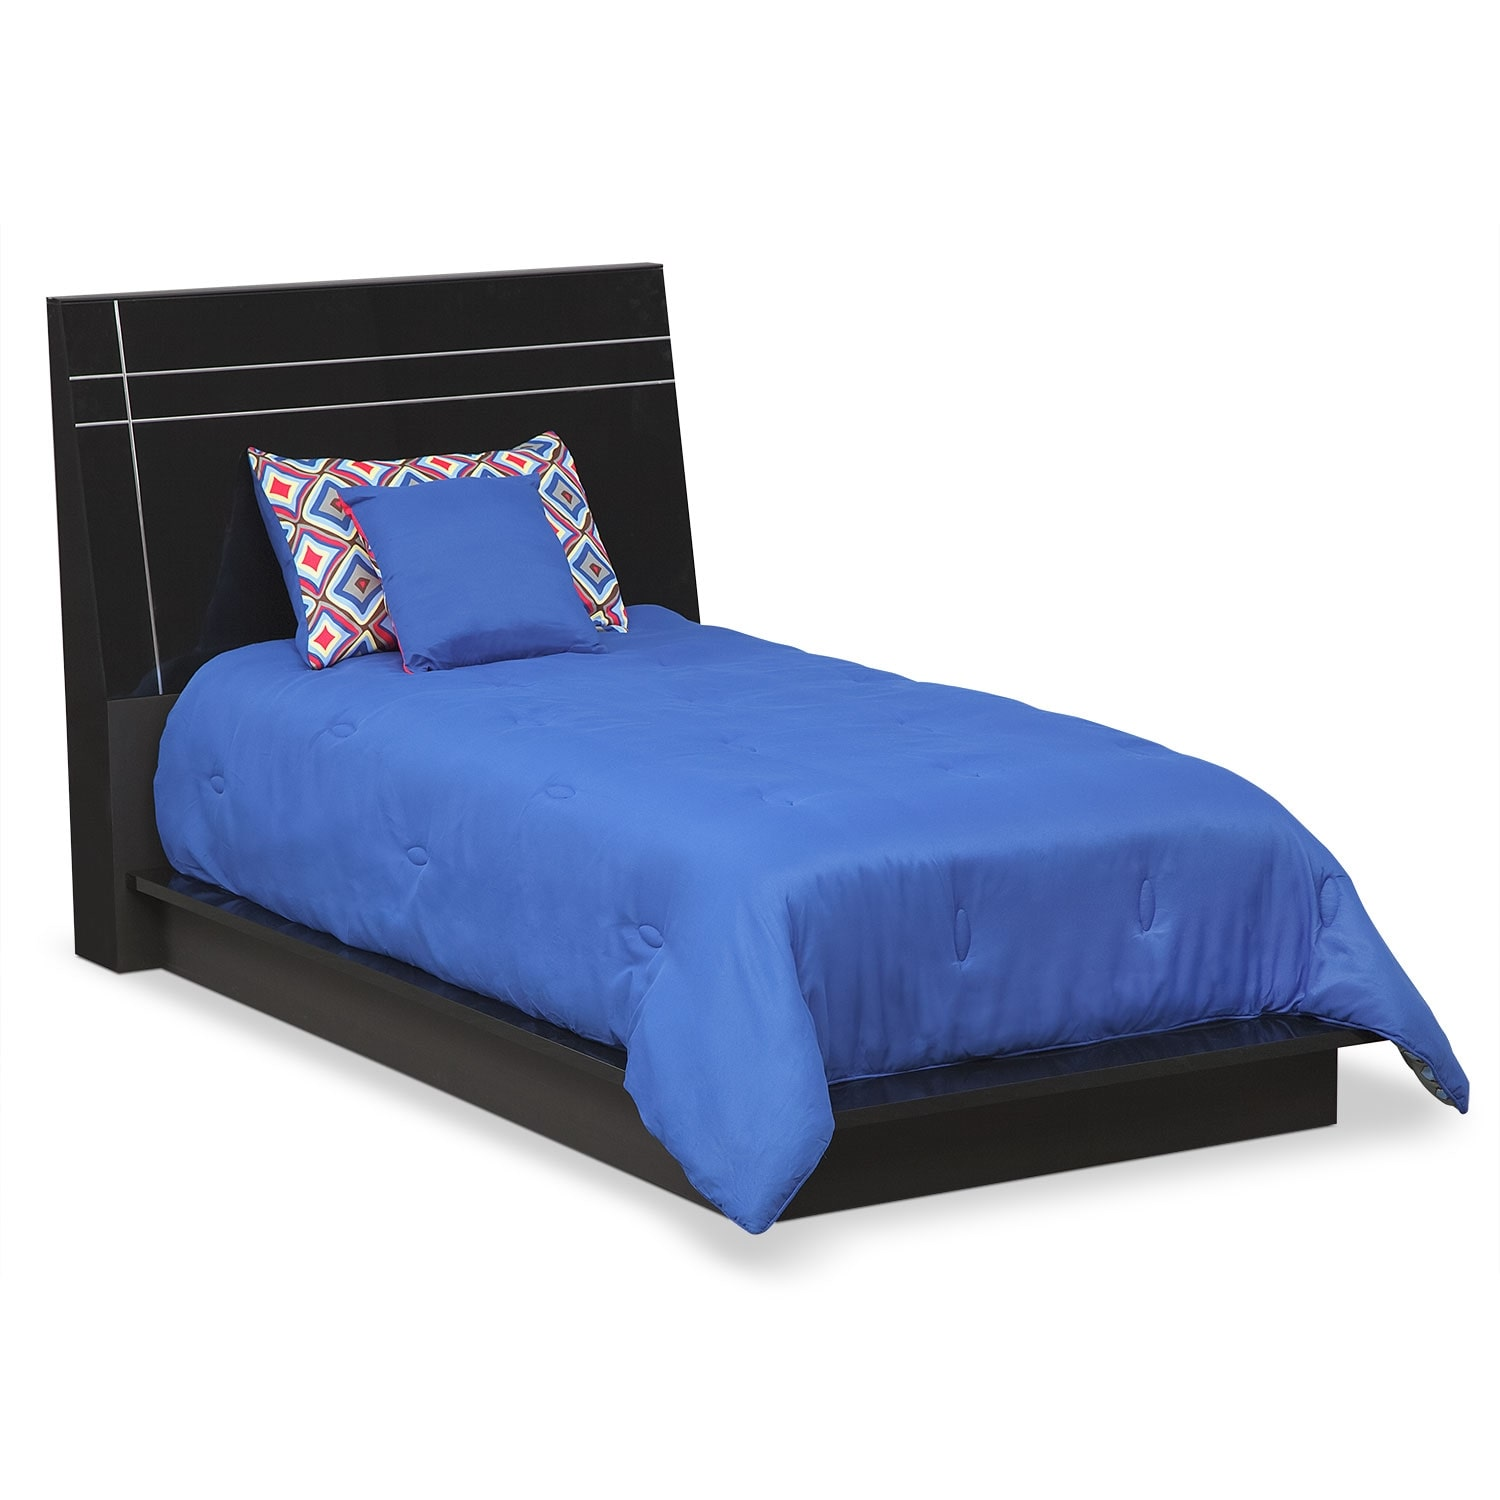 Bedroom Furniture - Dimora Twin Panel Bed - Black